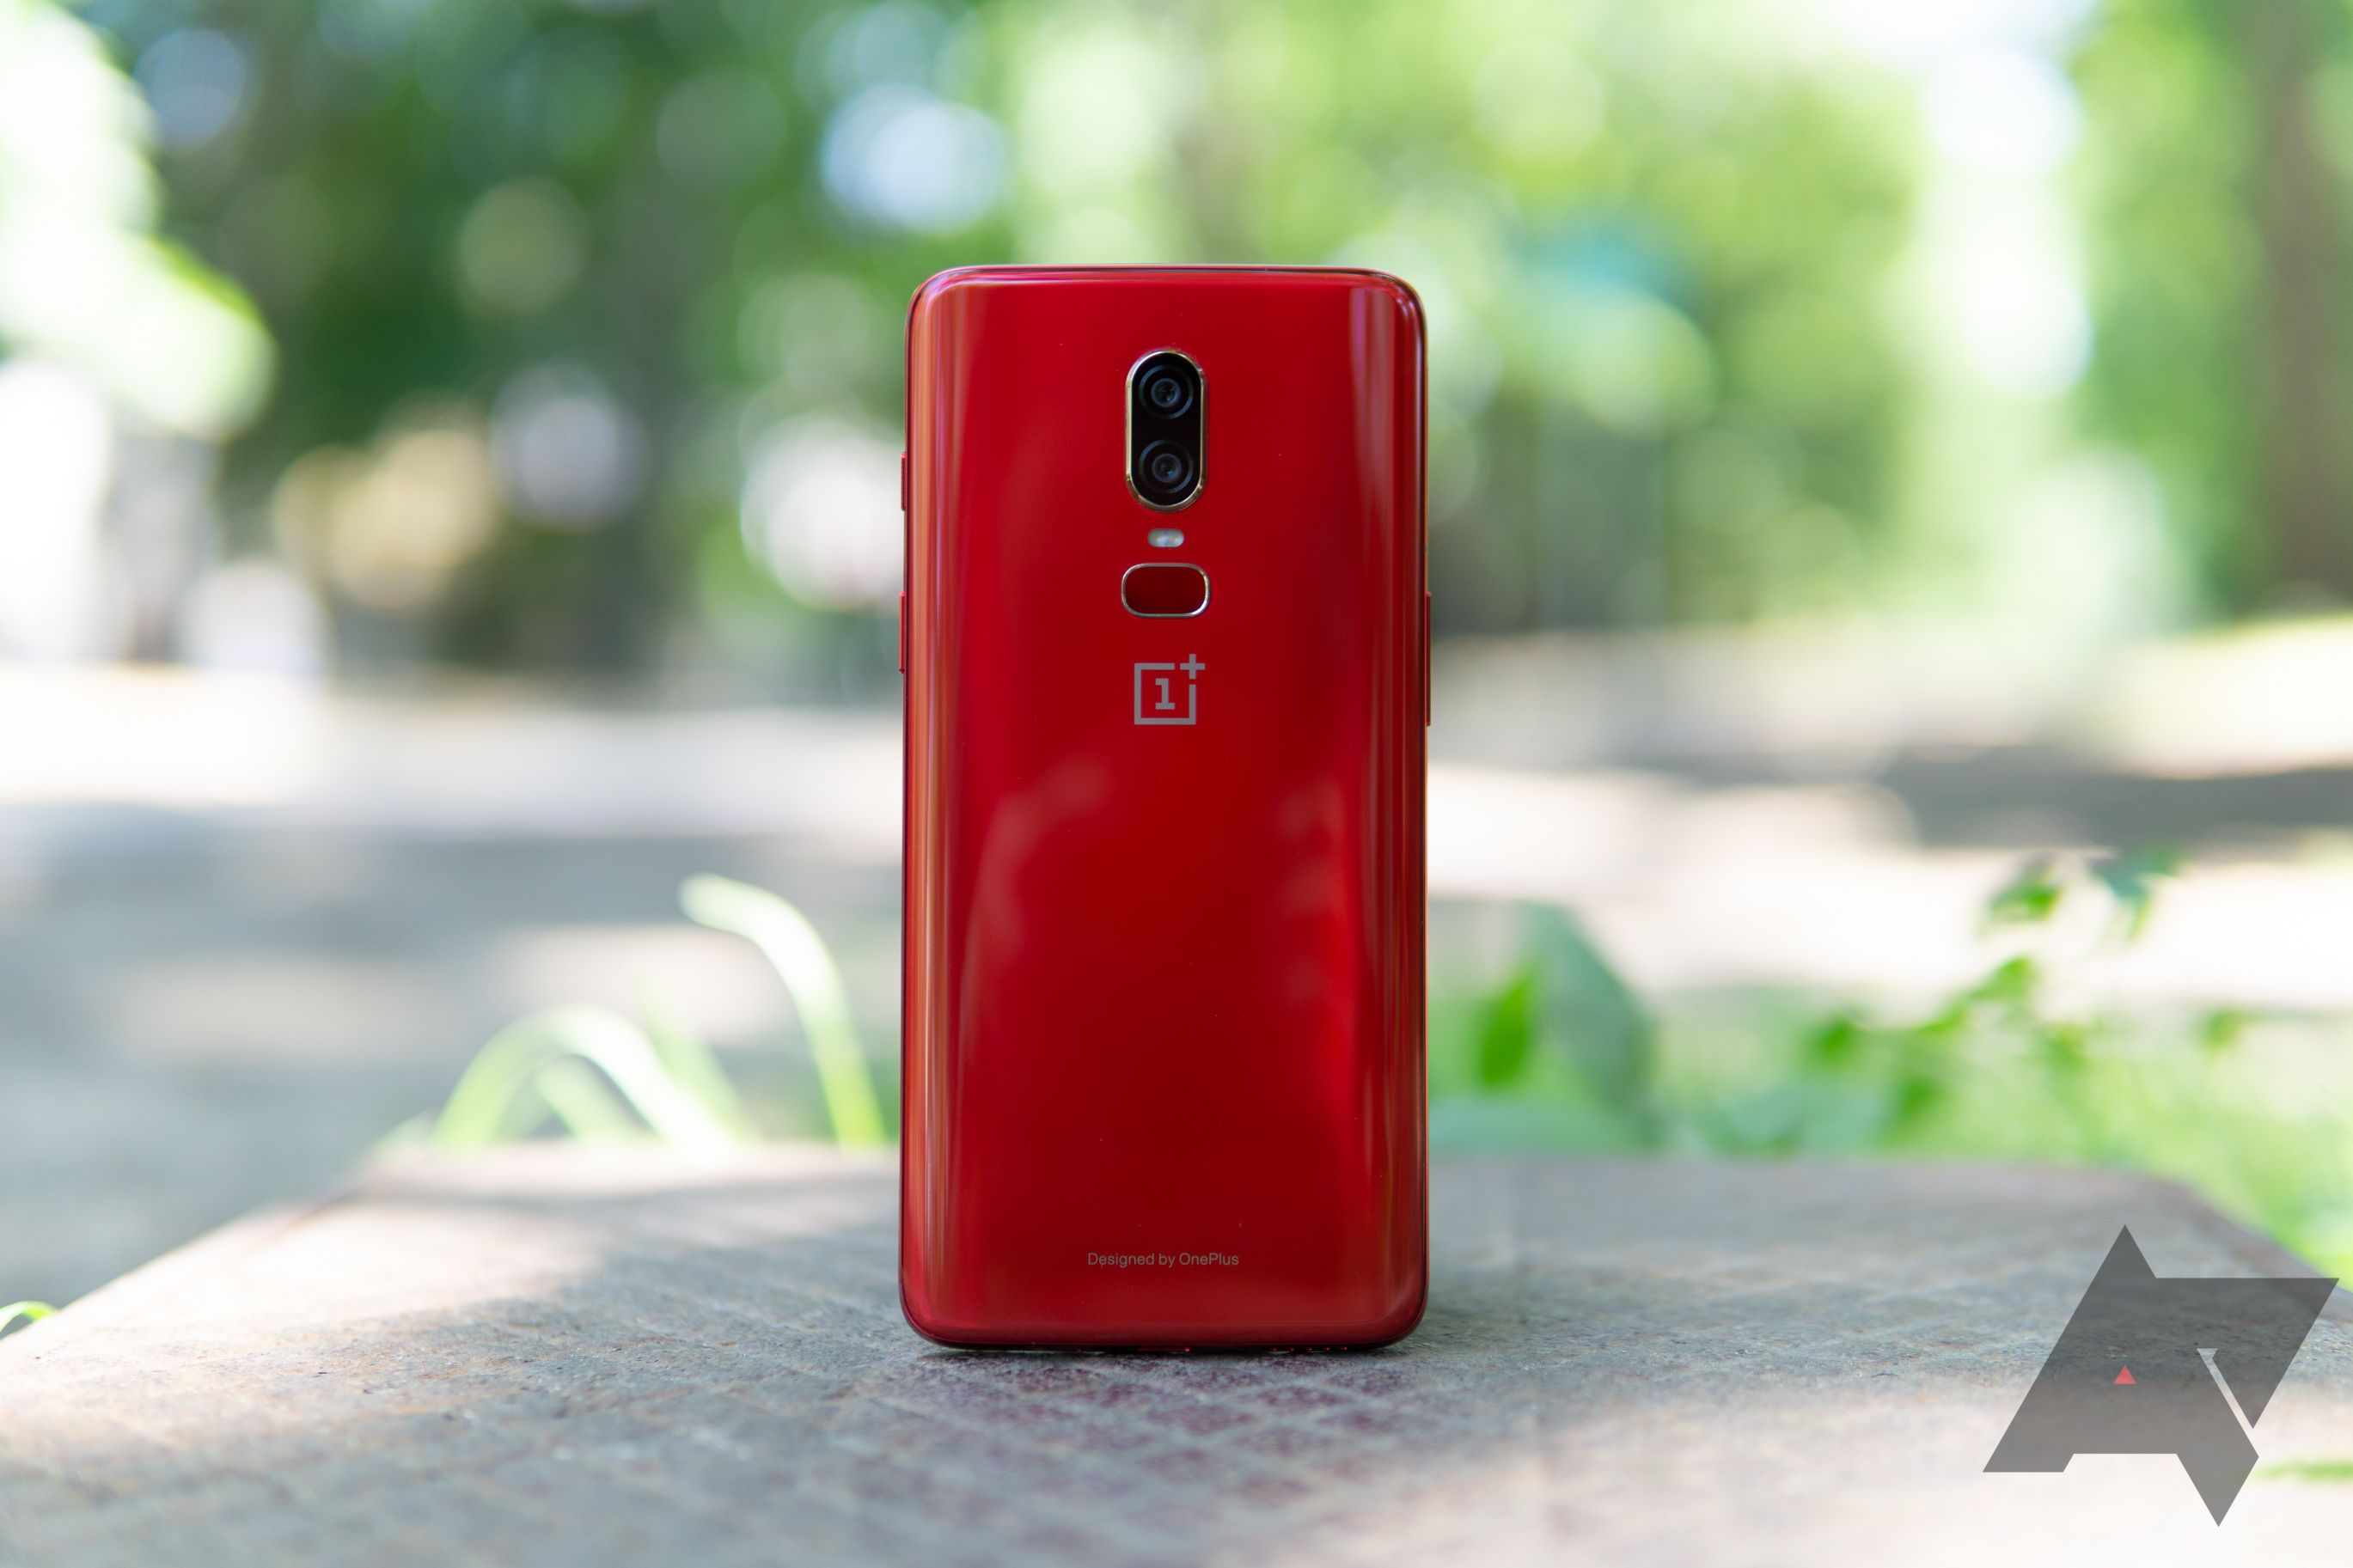 OnePlus phones are constantly deleting speed dial contacts, but a